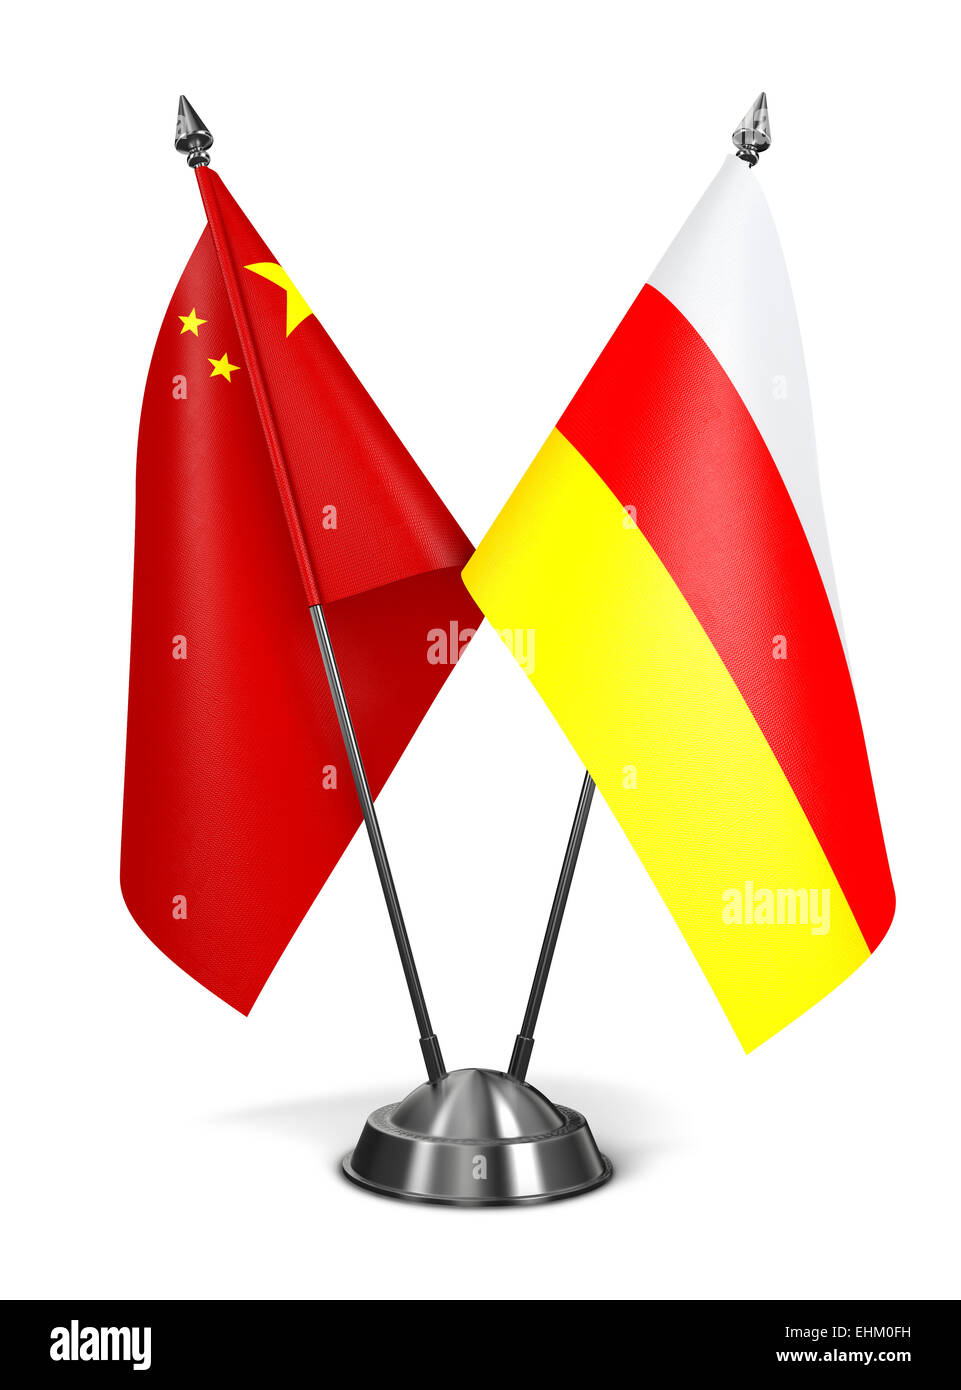 China and South Ossetia - Miniature Flags. - Stock Image